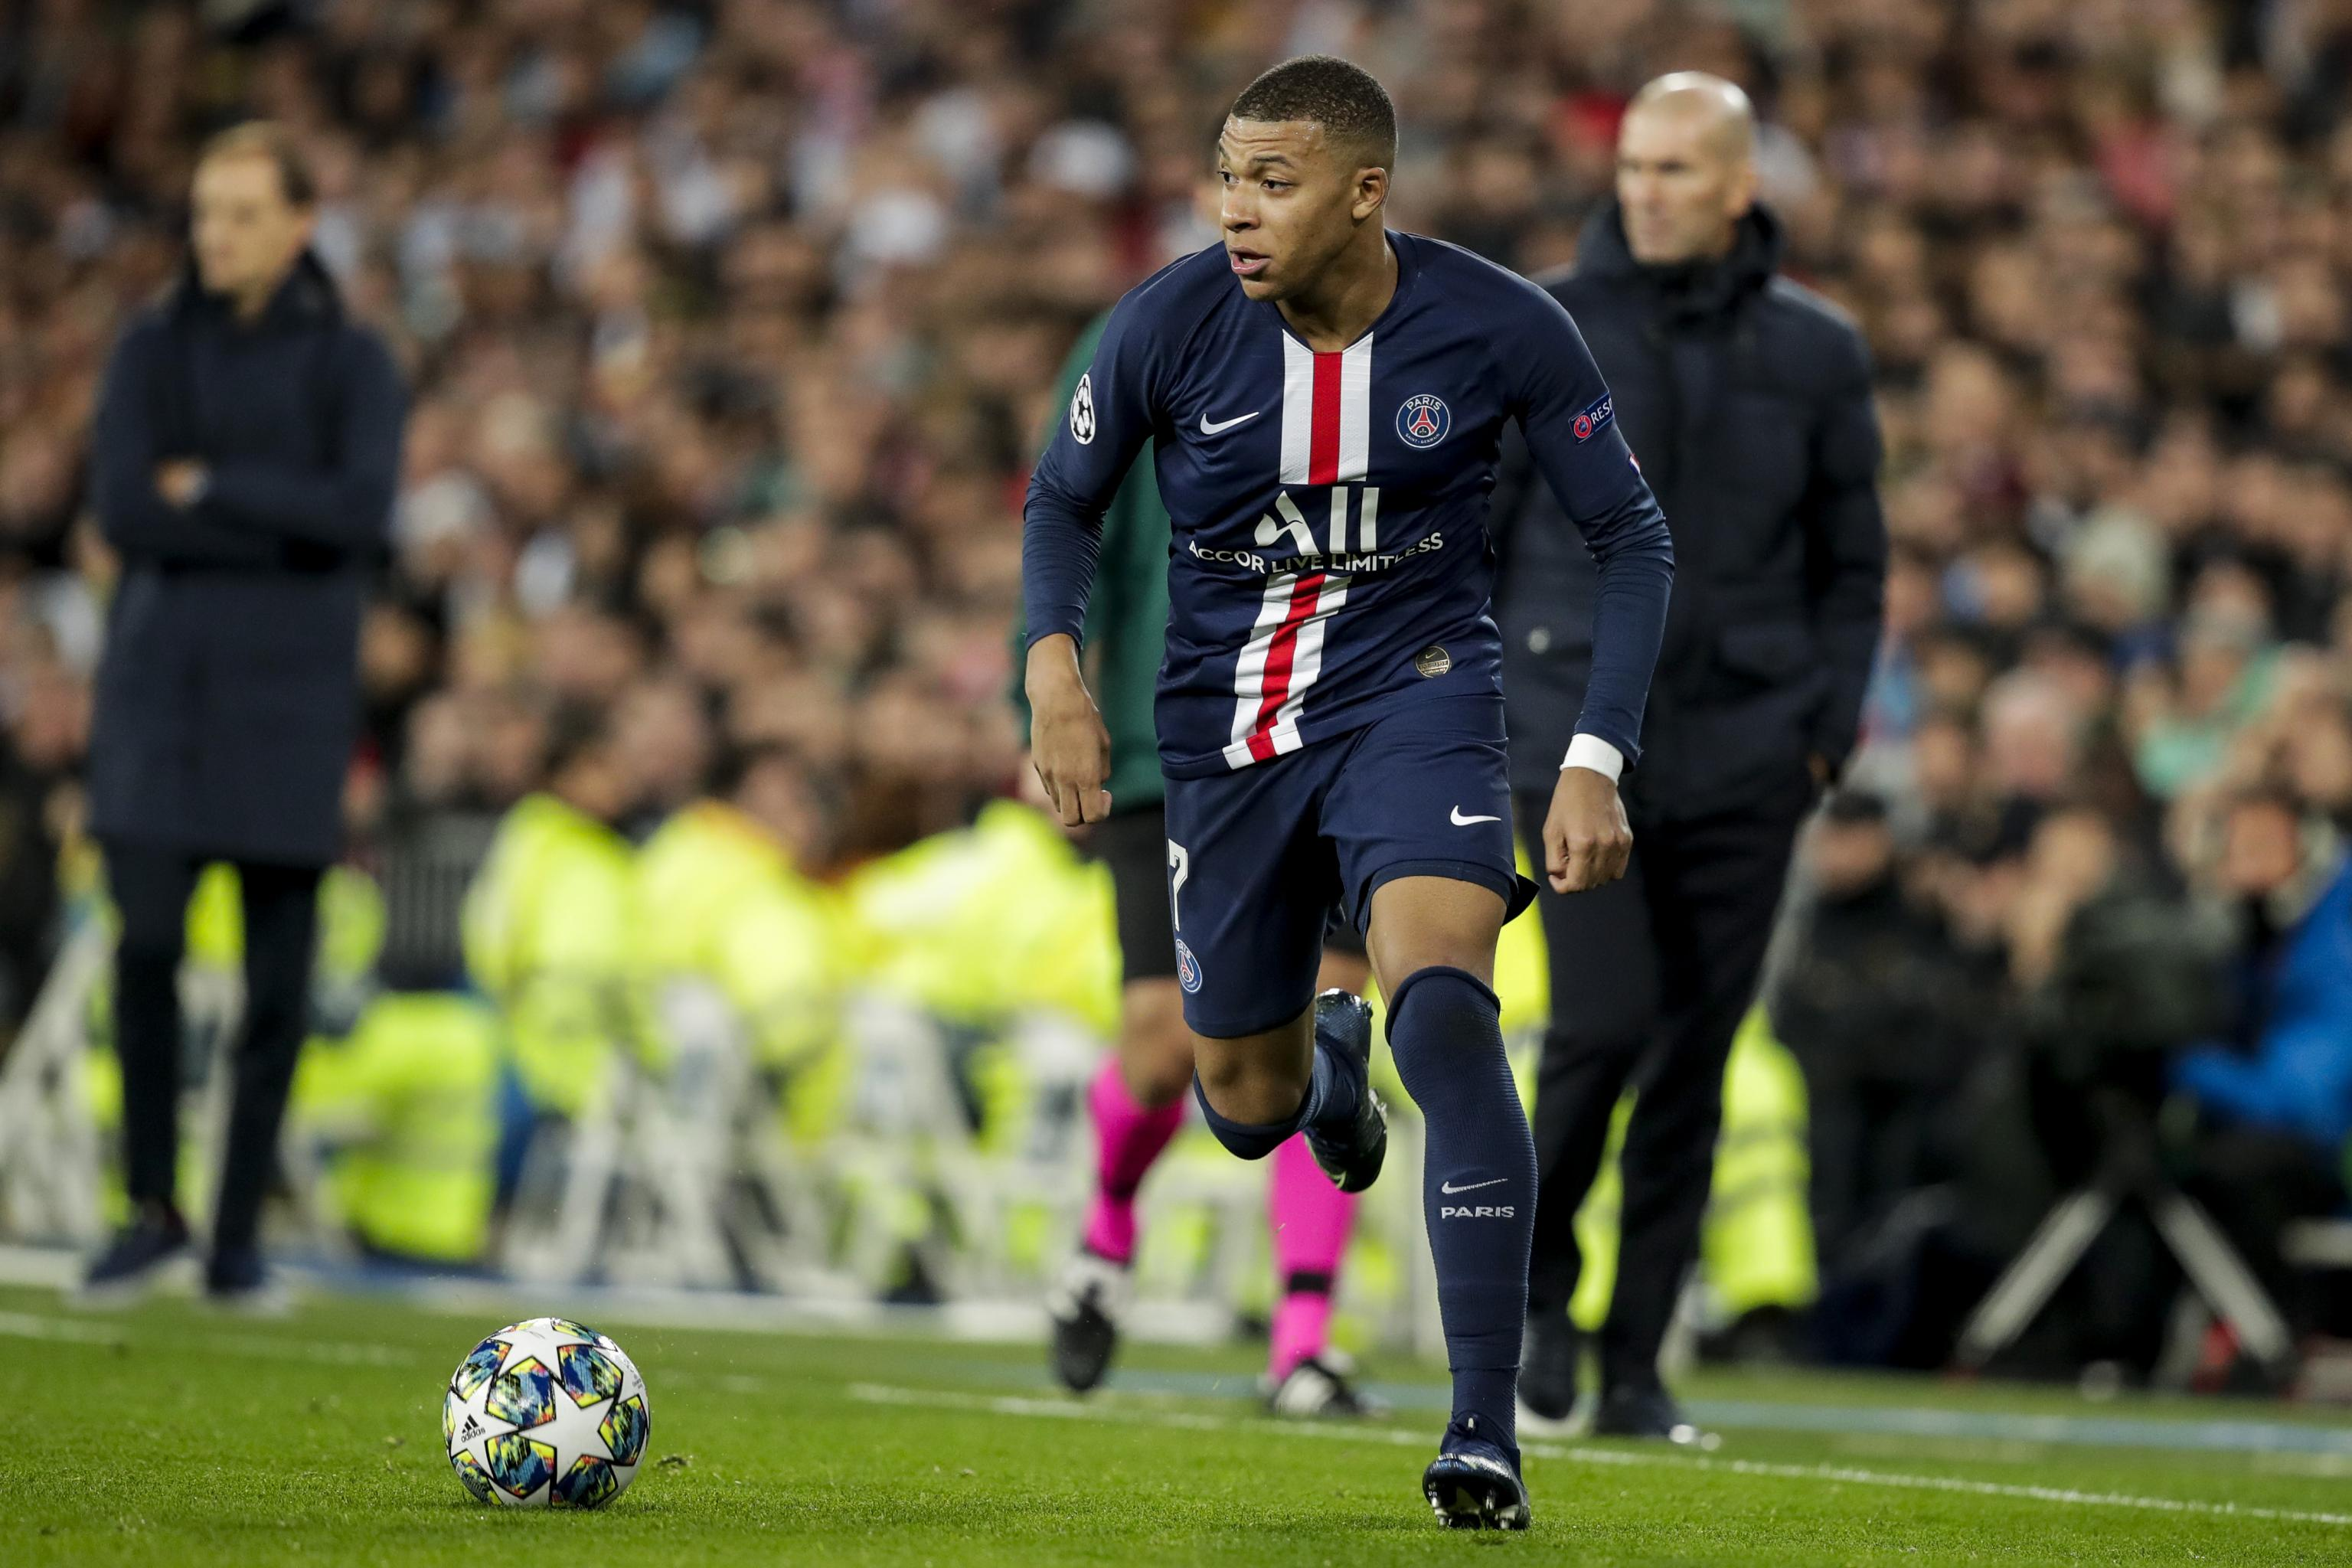 Image result for Kylian Mbappé